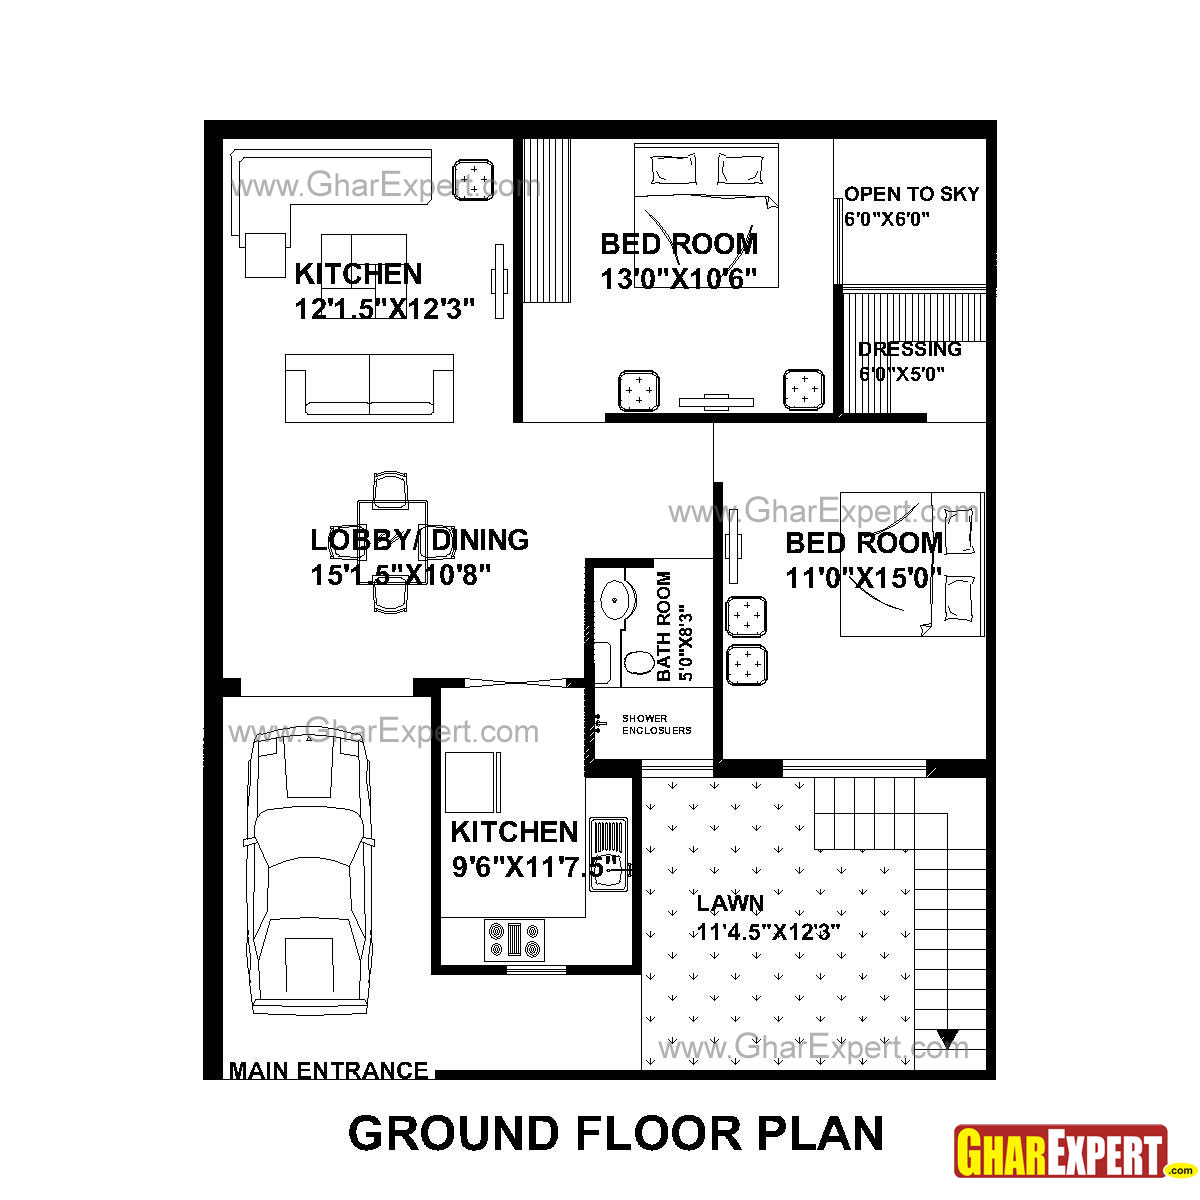 Garage Plans Blueprints 26 X 36 3 Car Traditional: House Plan For 33 Feet By 40 Feet Plot Everyone Will Like